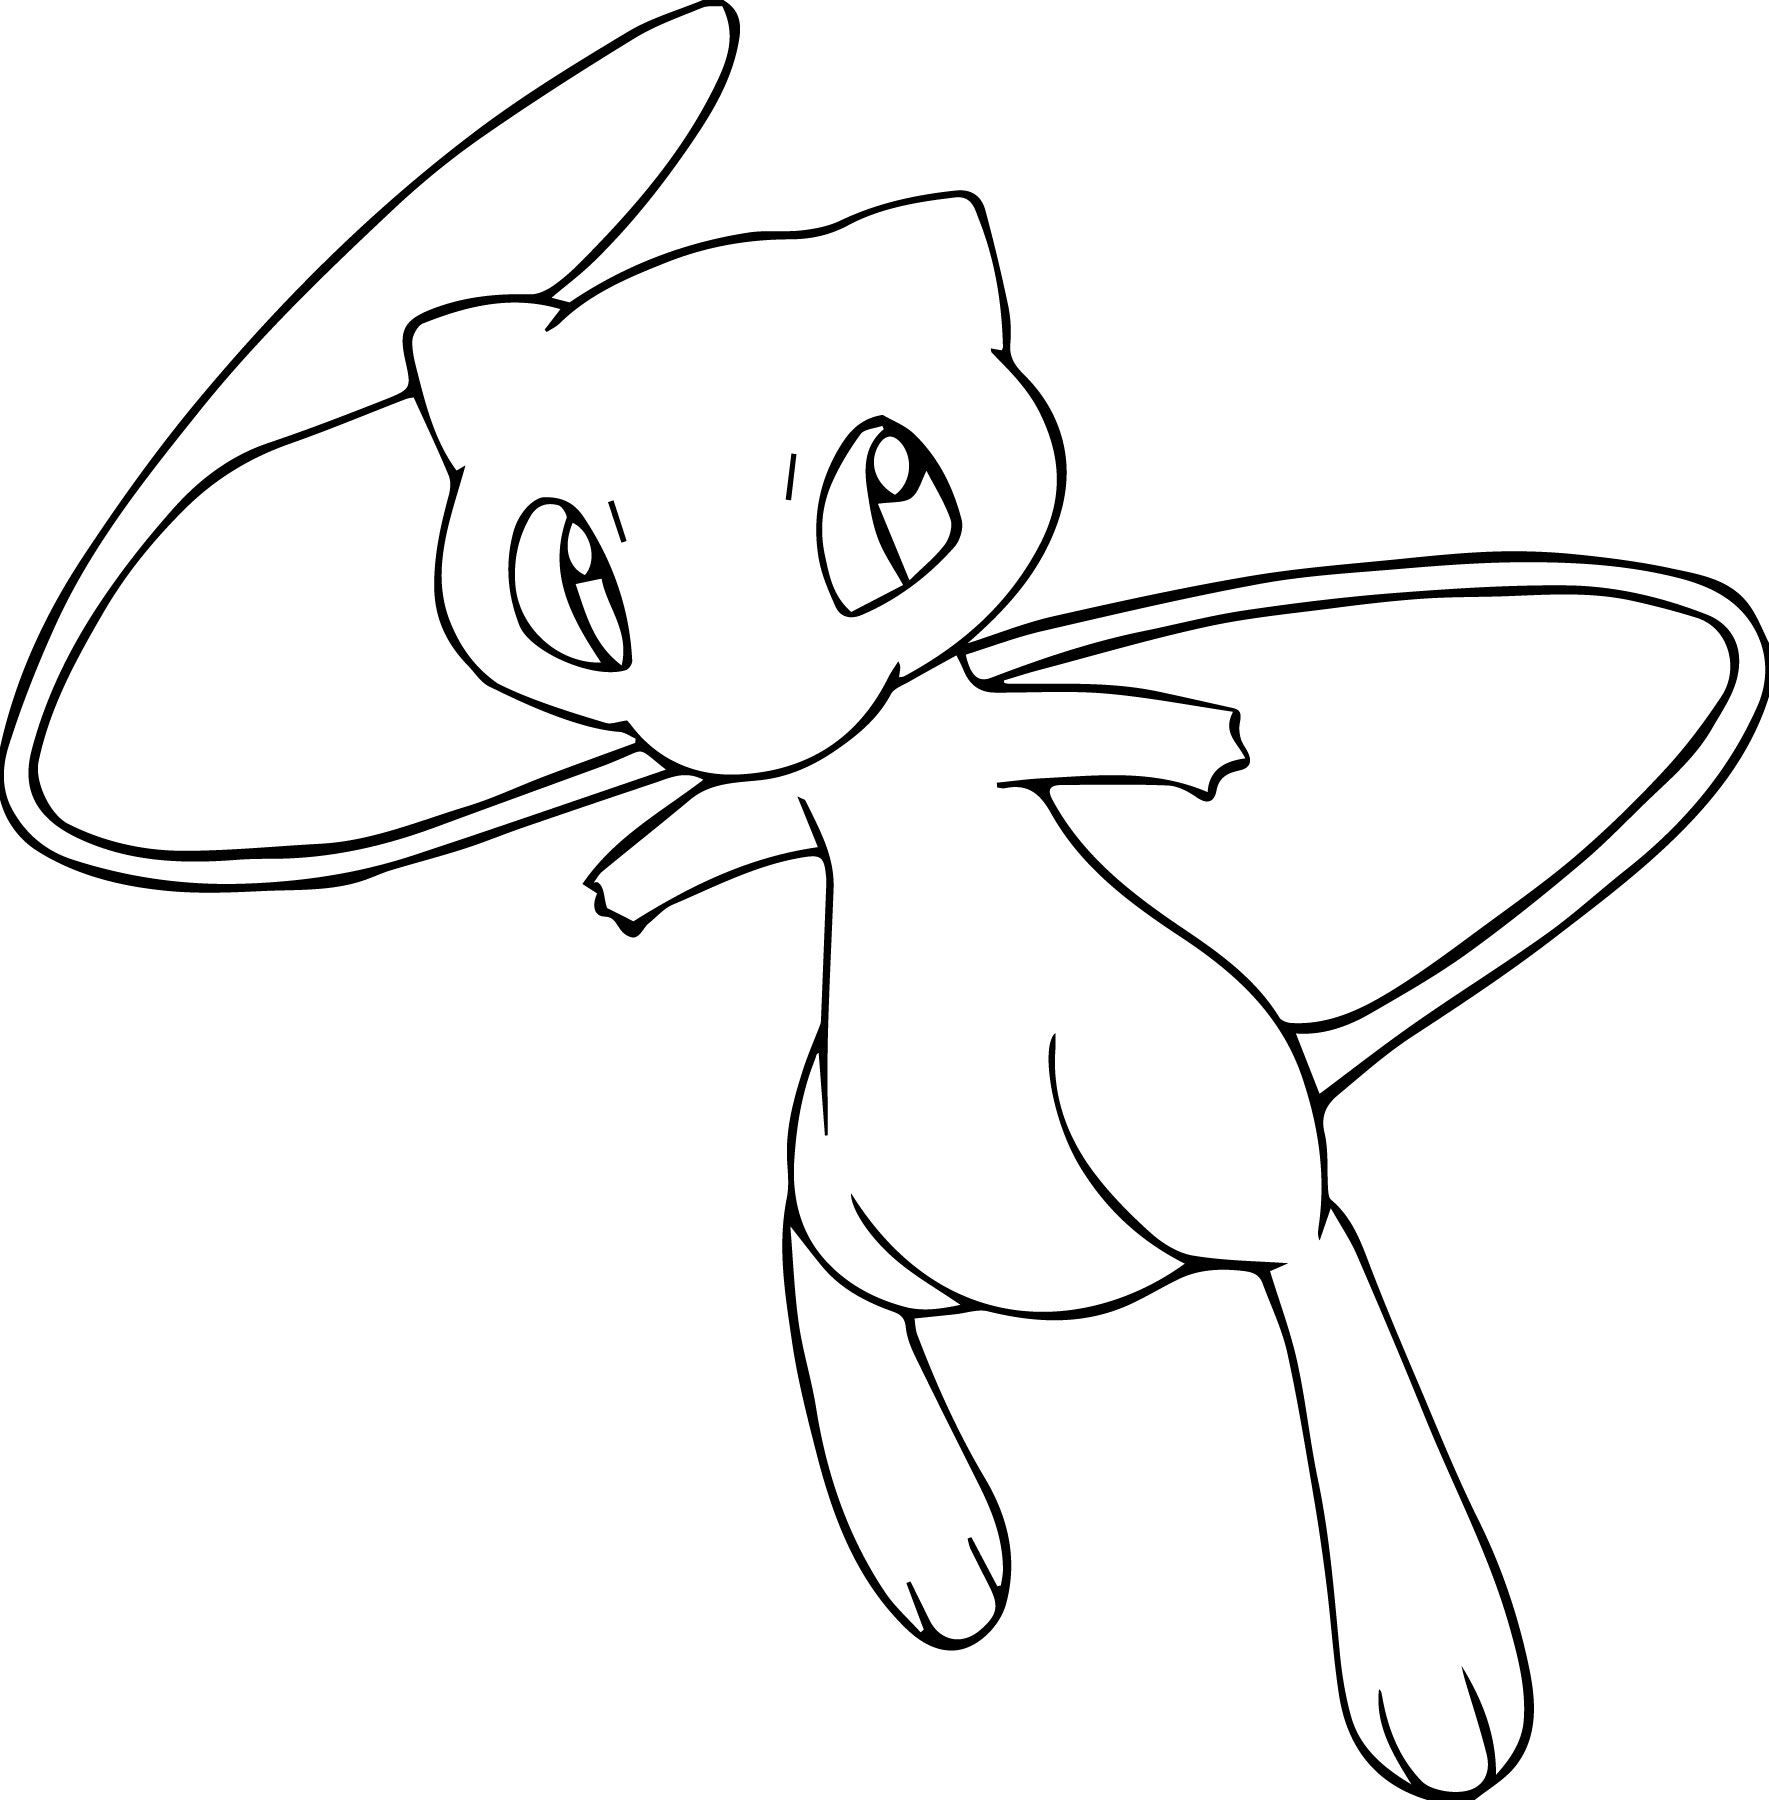 Mew Coloring Page Pokemon Coloring Pages Pokemon Coloring Coloring Pages